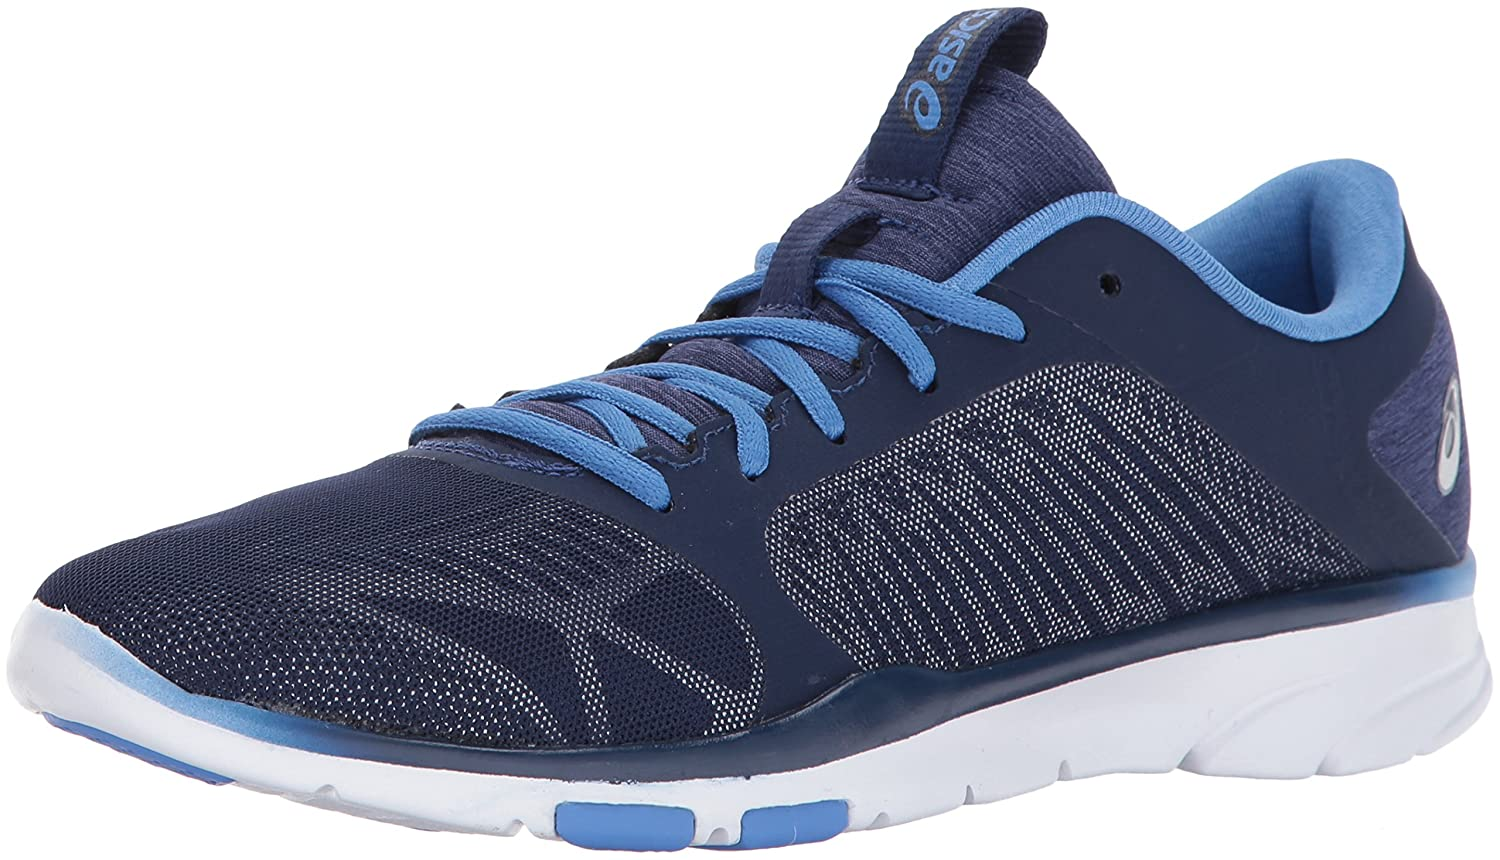 ASICS Women's Gel-Fit Tempo 3 Cross Trainer B01MTLEBWS 8.5 B(M) US|Indigo Blue/Silver/Regatta Blue